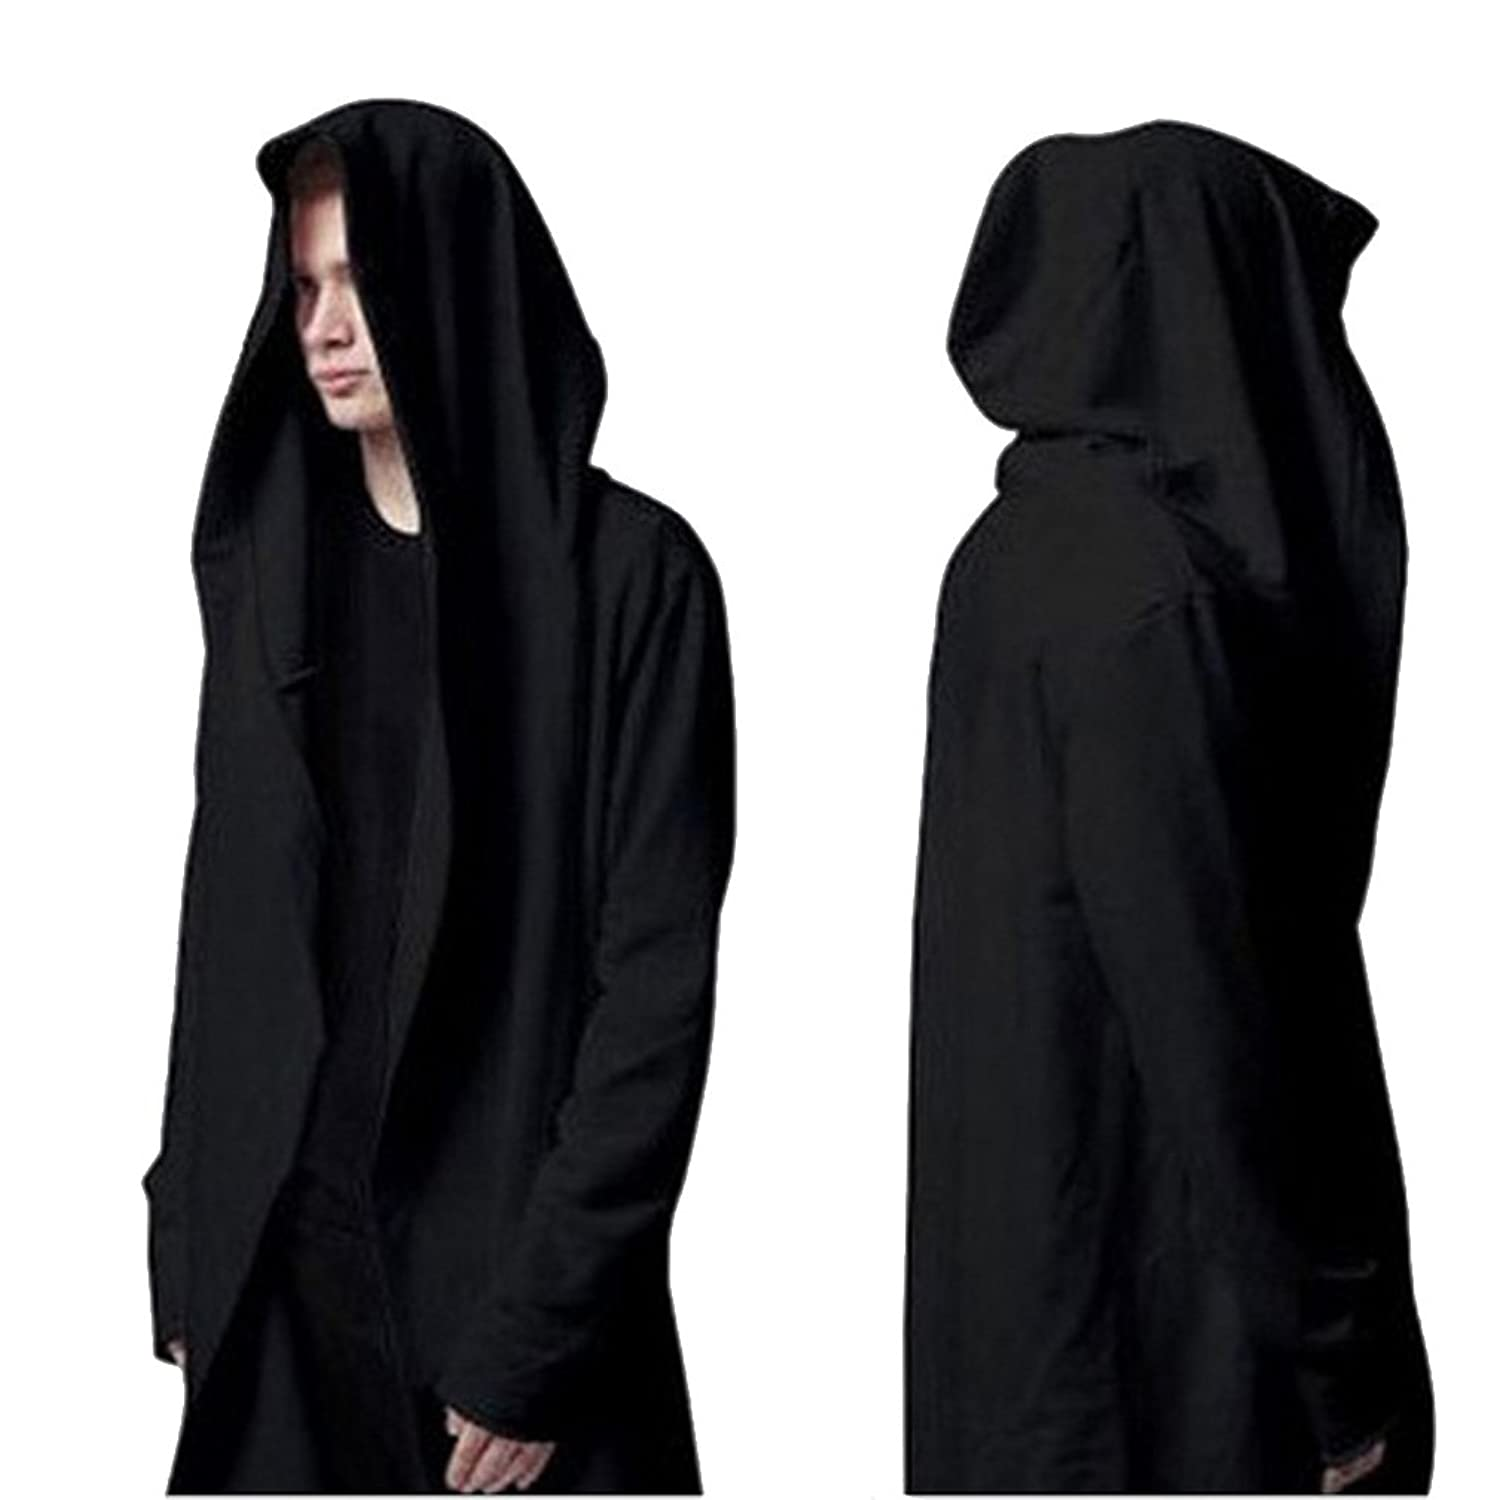 Amazon.com: Weiyi Men's Long Hooded Cape - Black: Clothing